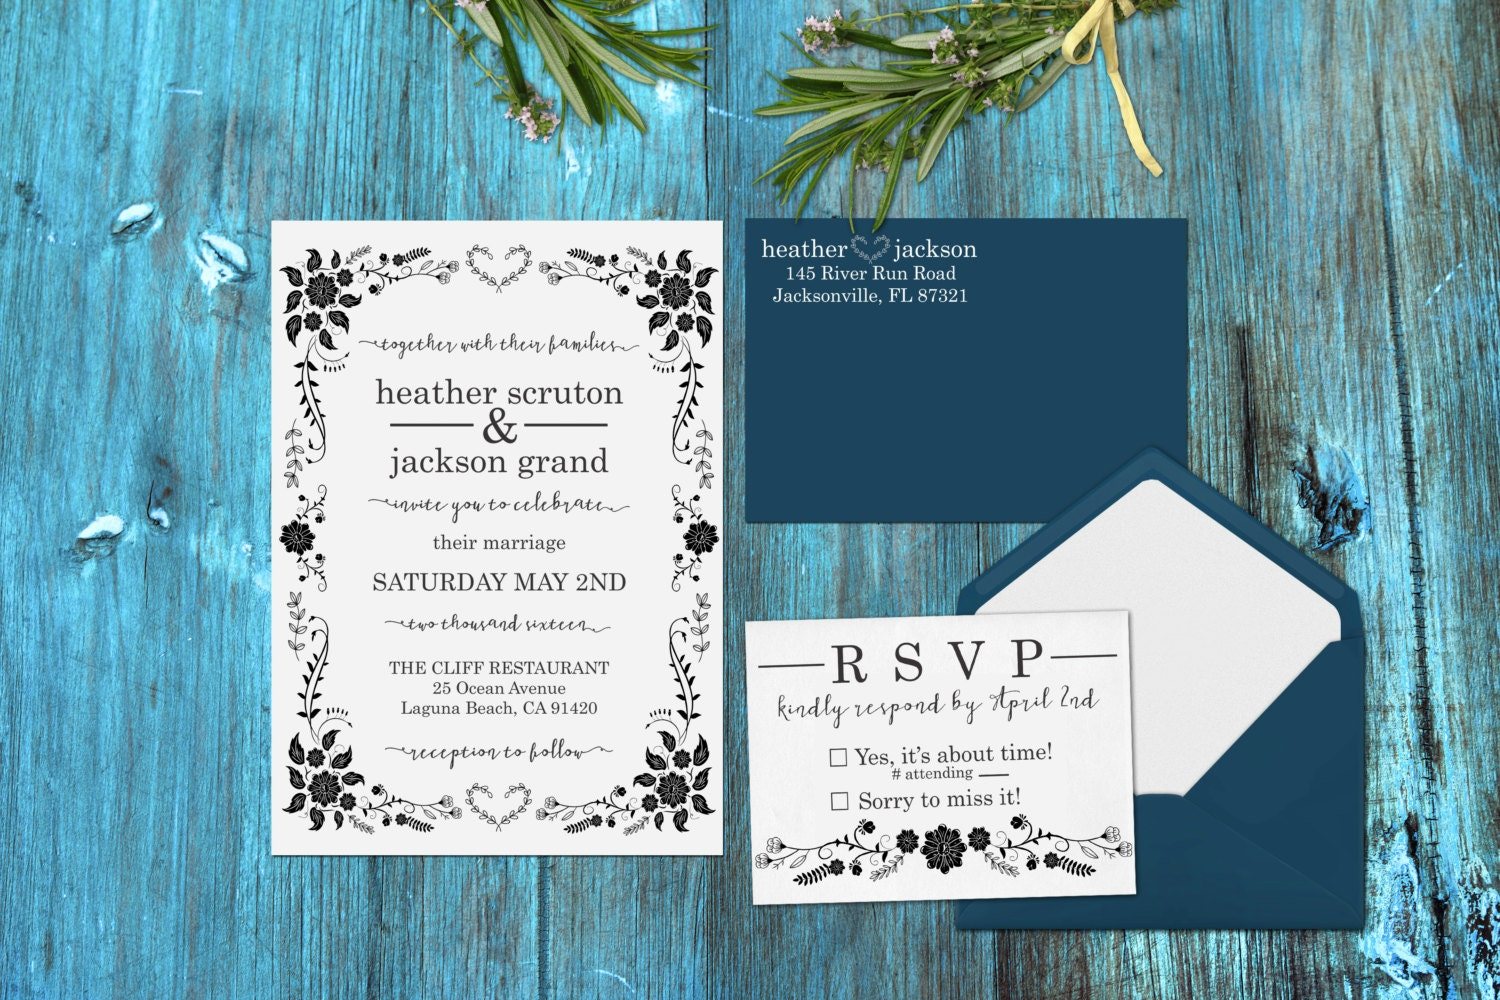 Wedding Invite Stamp: Wedding Invitation Stamp Set DIY Wedding Invitations